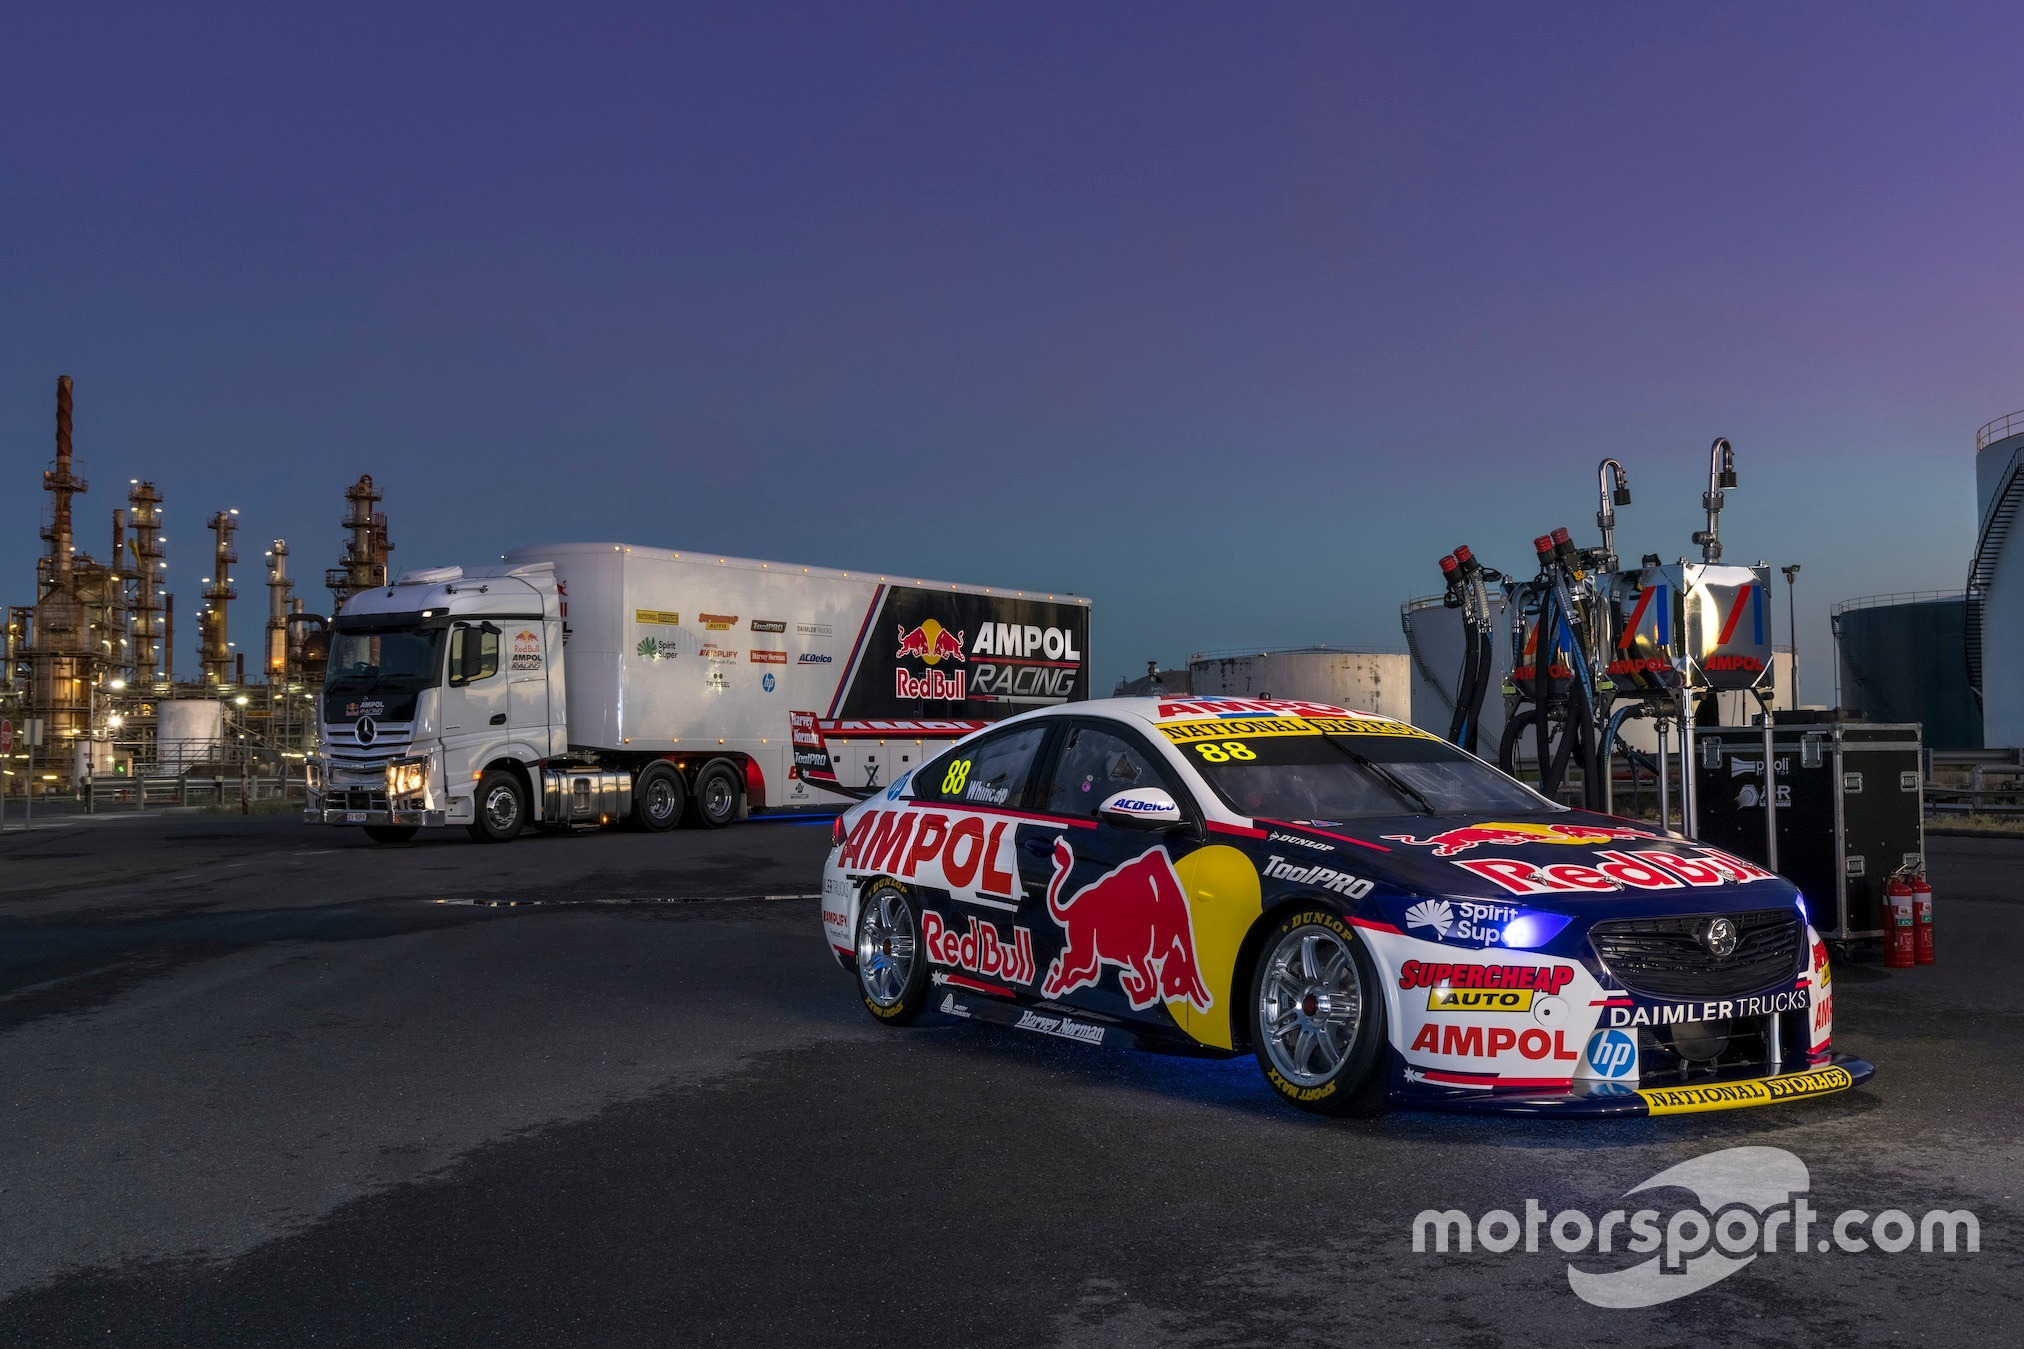 Red Bull Ampol Racing's 2021 Supercars challenger